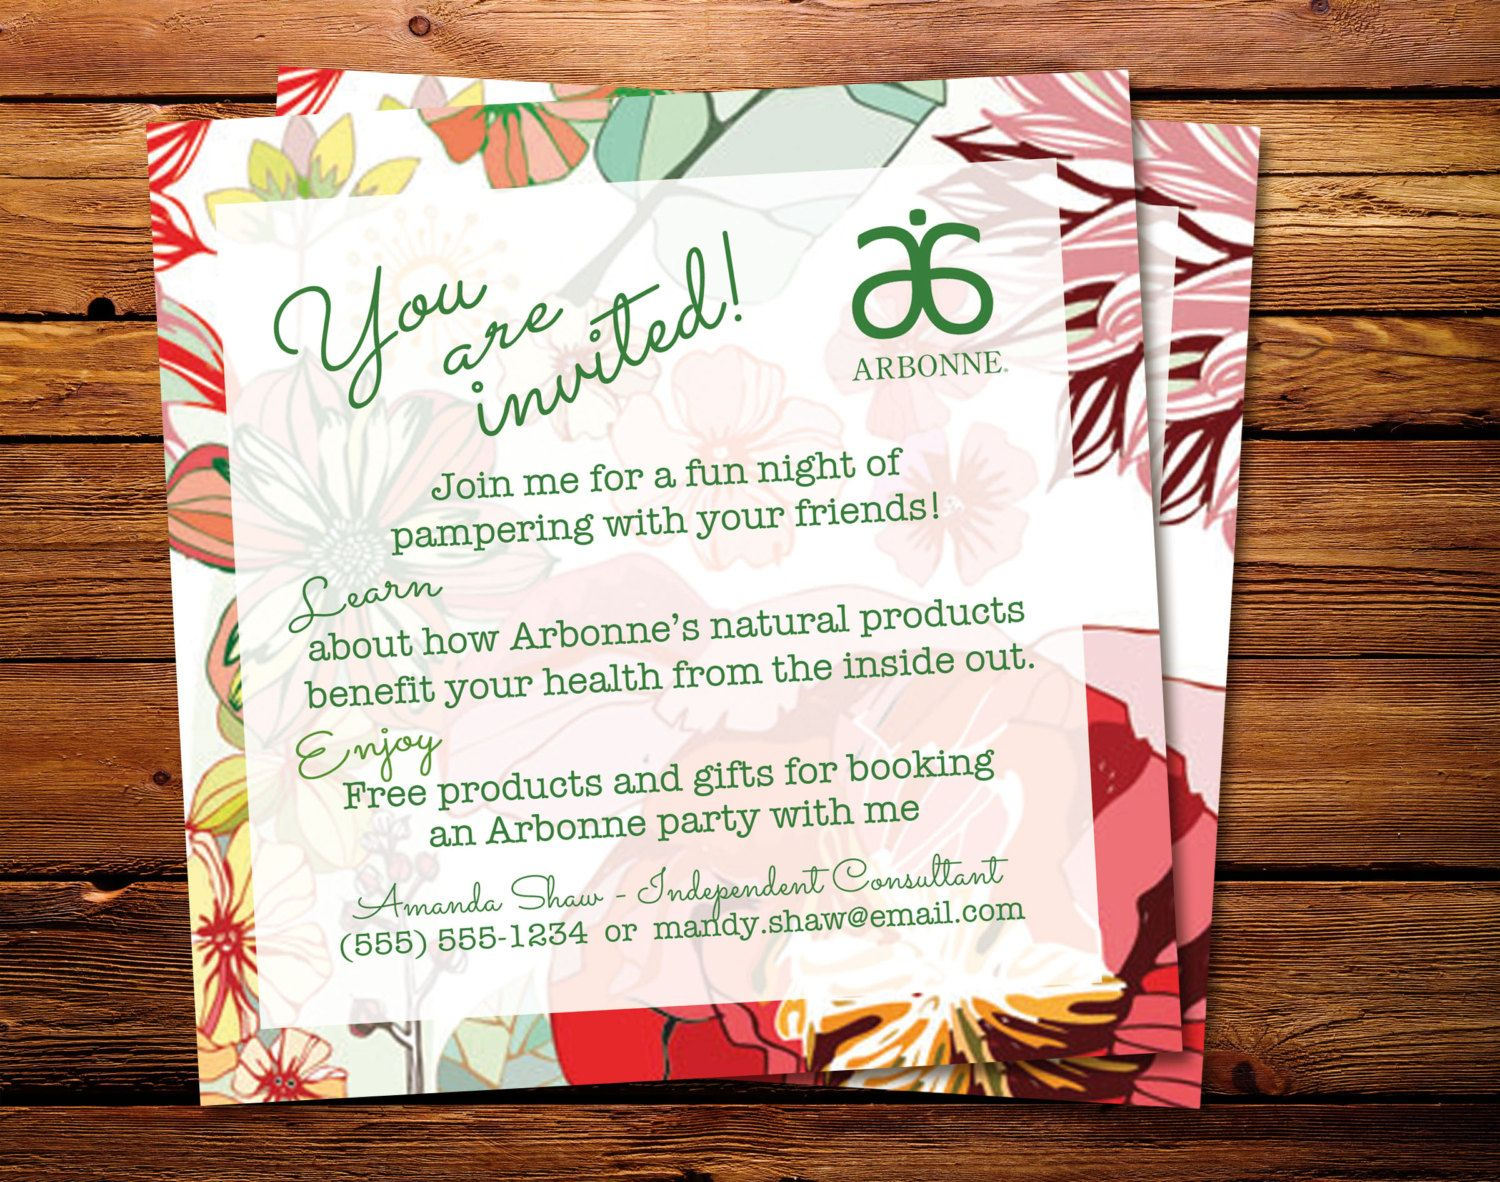 Interesting arbonne party invitation sample launch party examples interesting arbonne party invitation sample launch party examples arbonne invitation templates 8942 wajeb Image collections